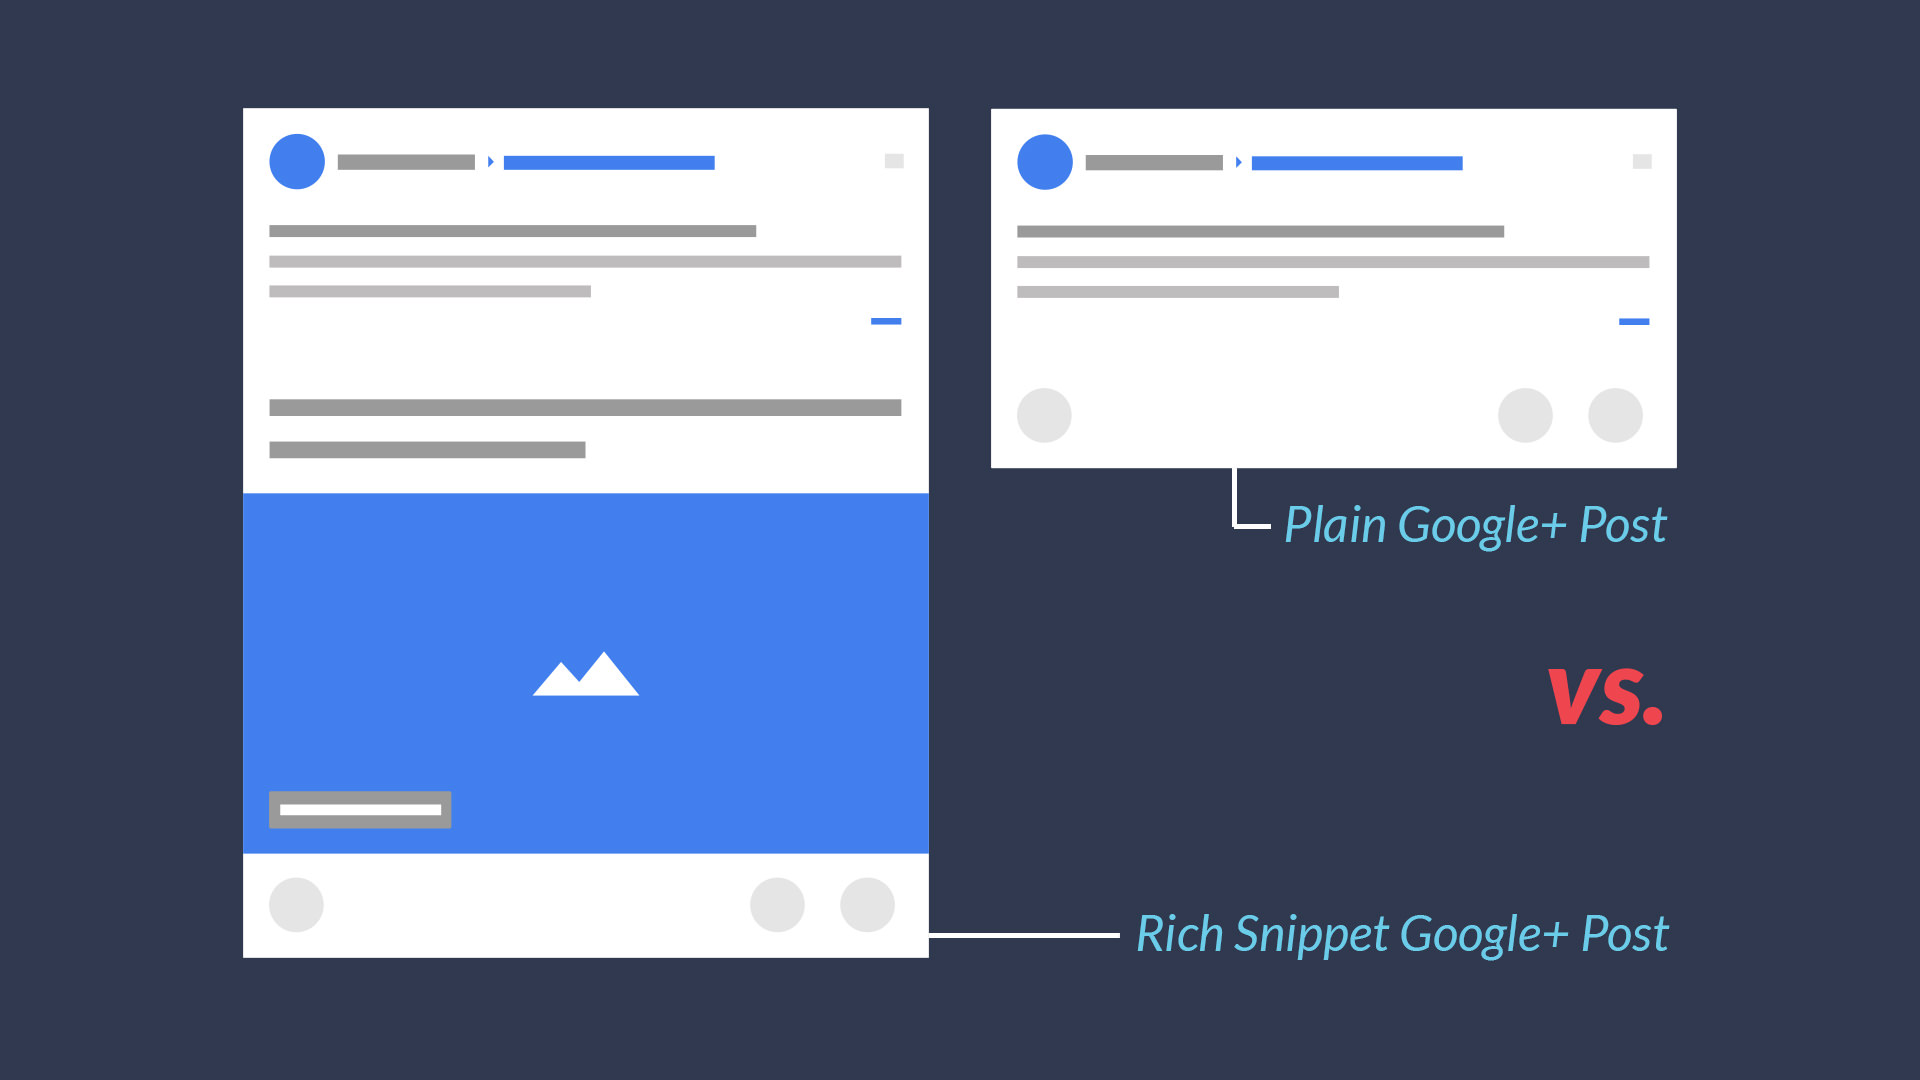 Rich Snippet Google+ Post vs. Plain Google+ Post